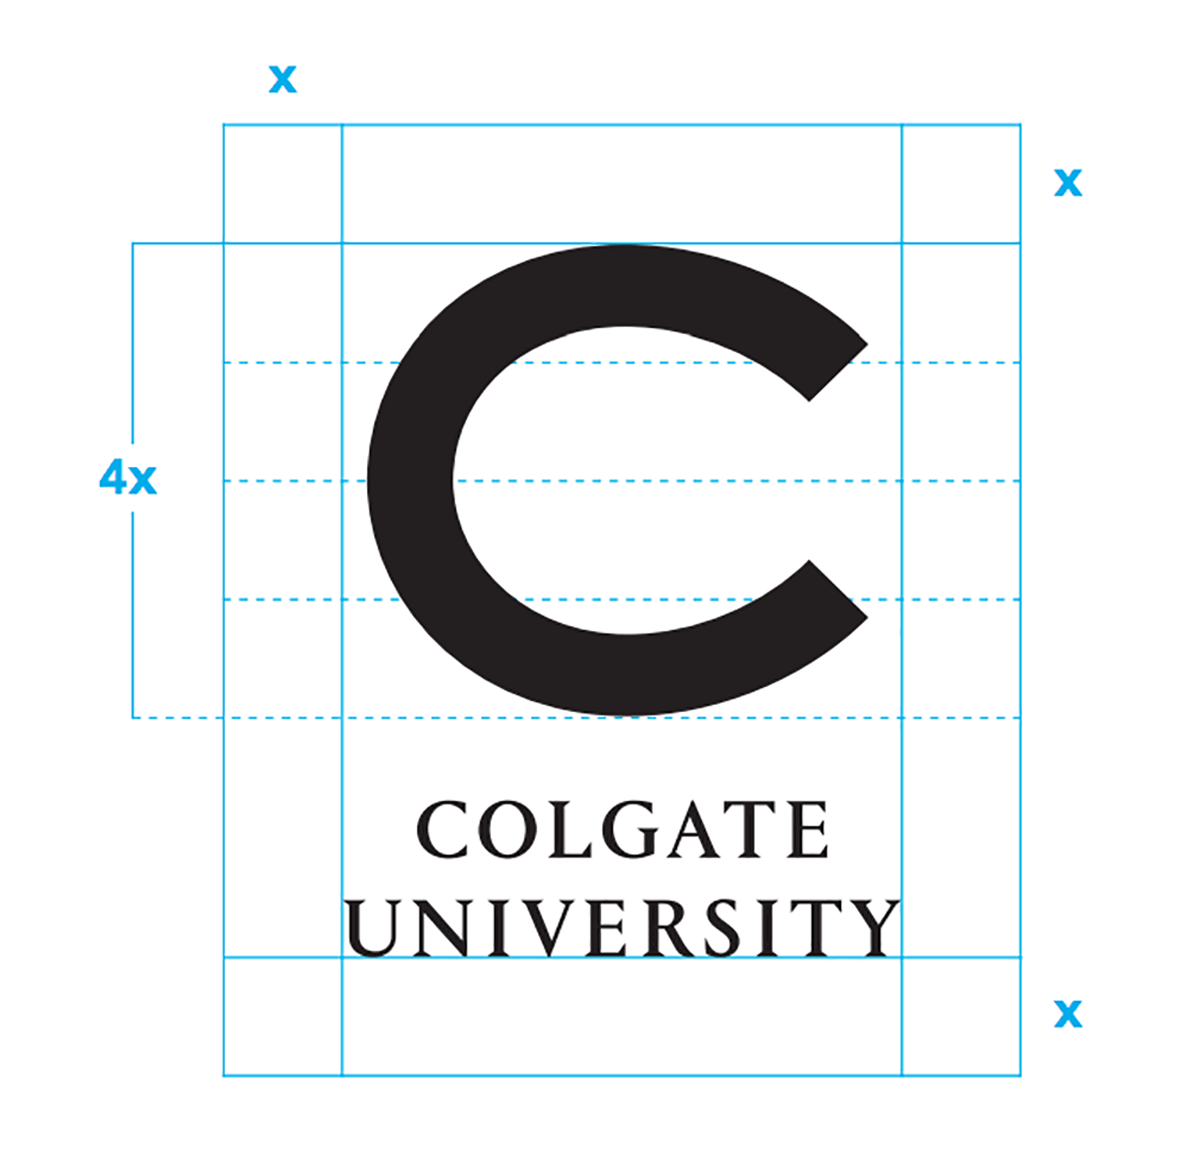 Colgate University C lockup with margin indicators